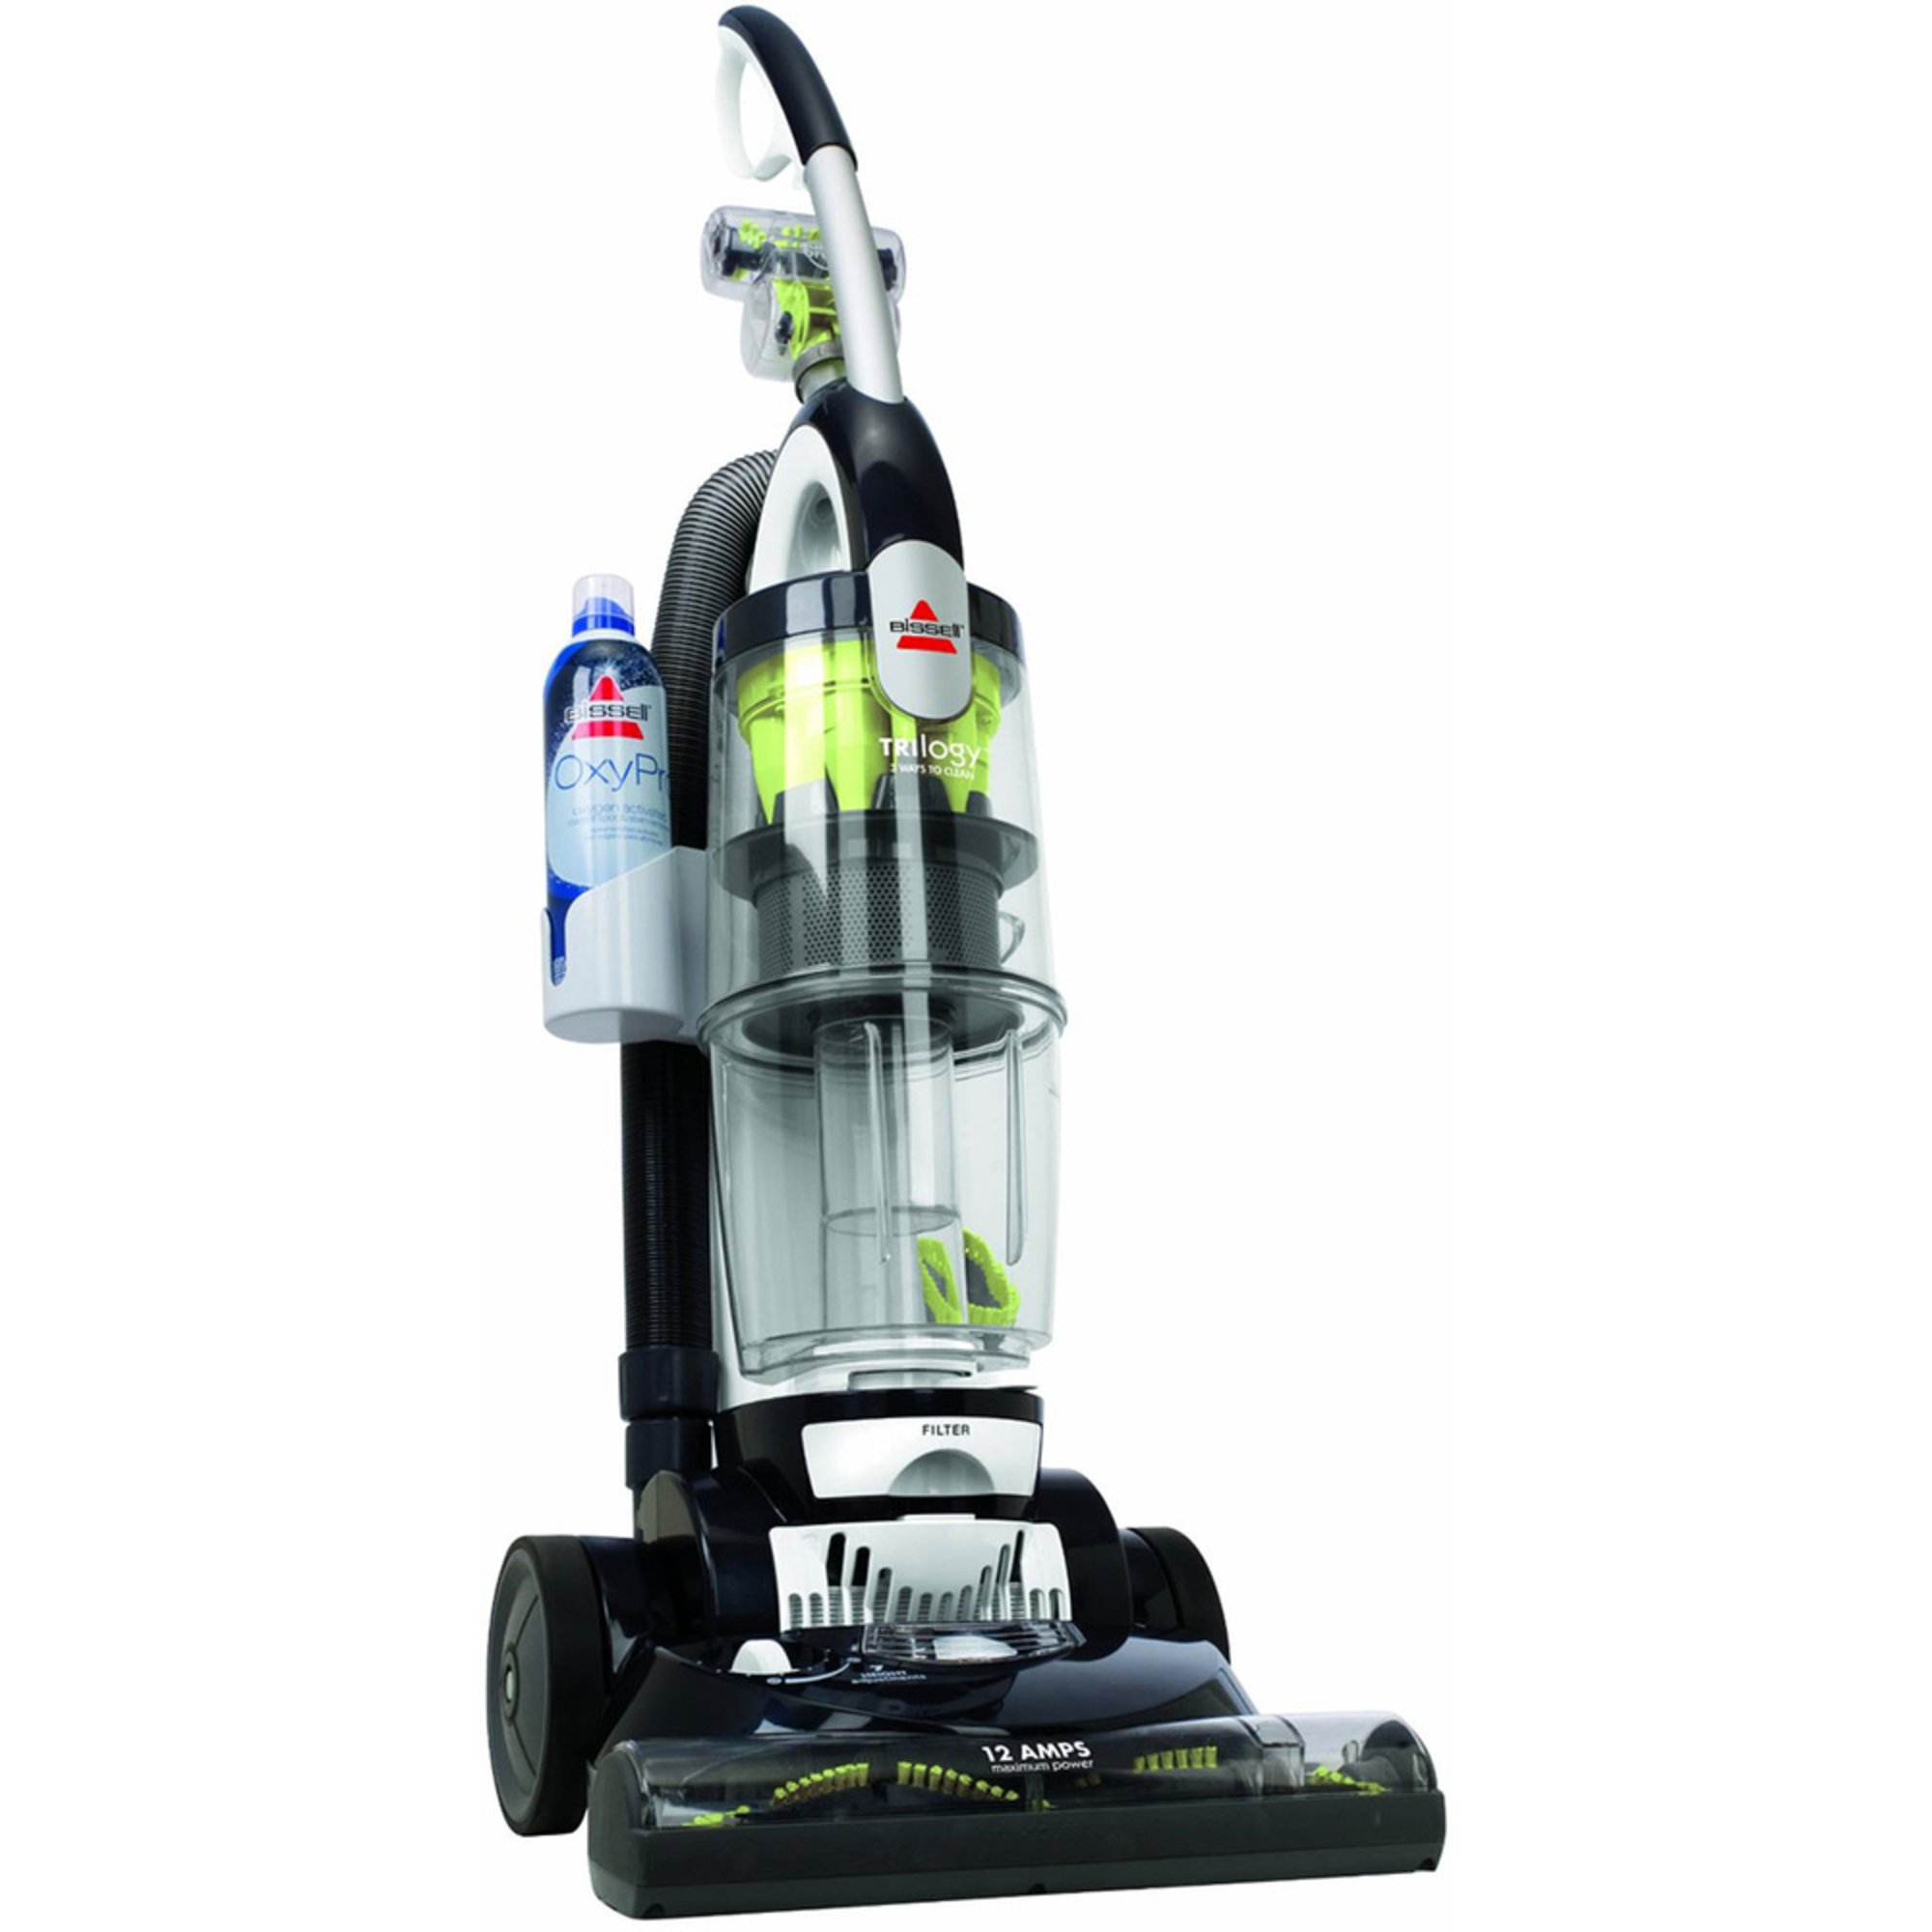 Bissell Trilogy Vacuum 81m9 Upright Vacuums For The